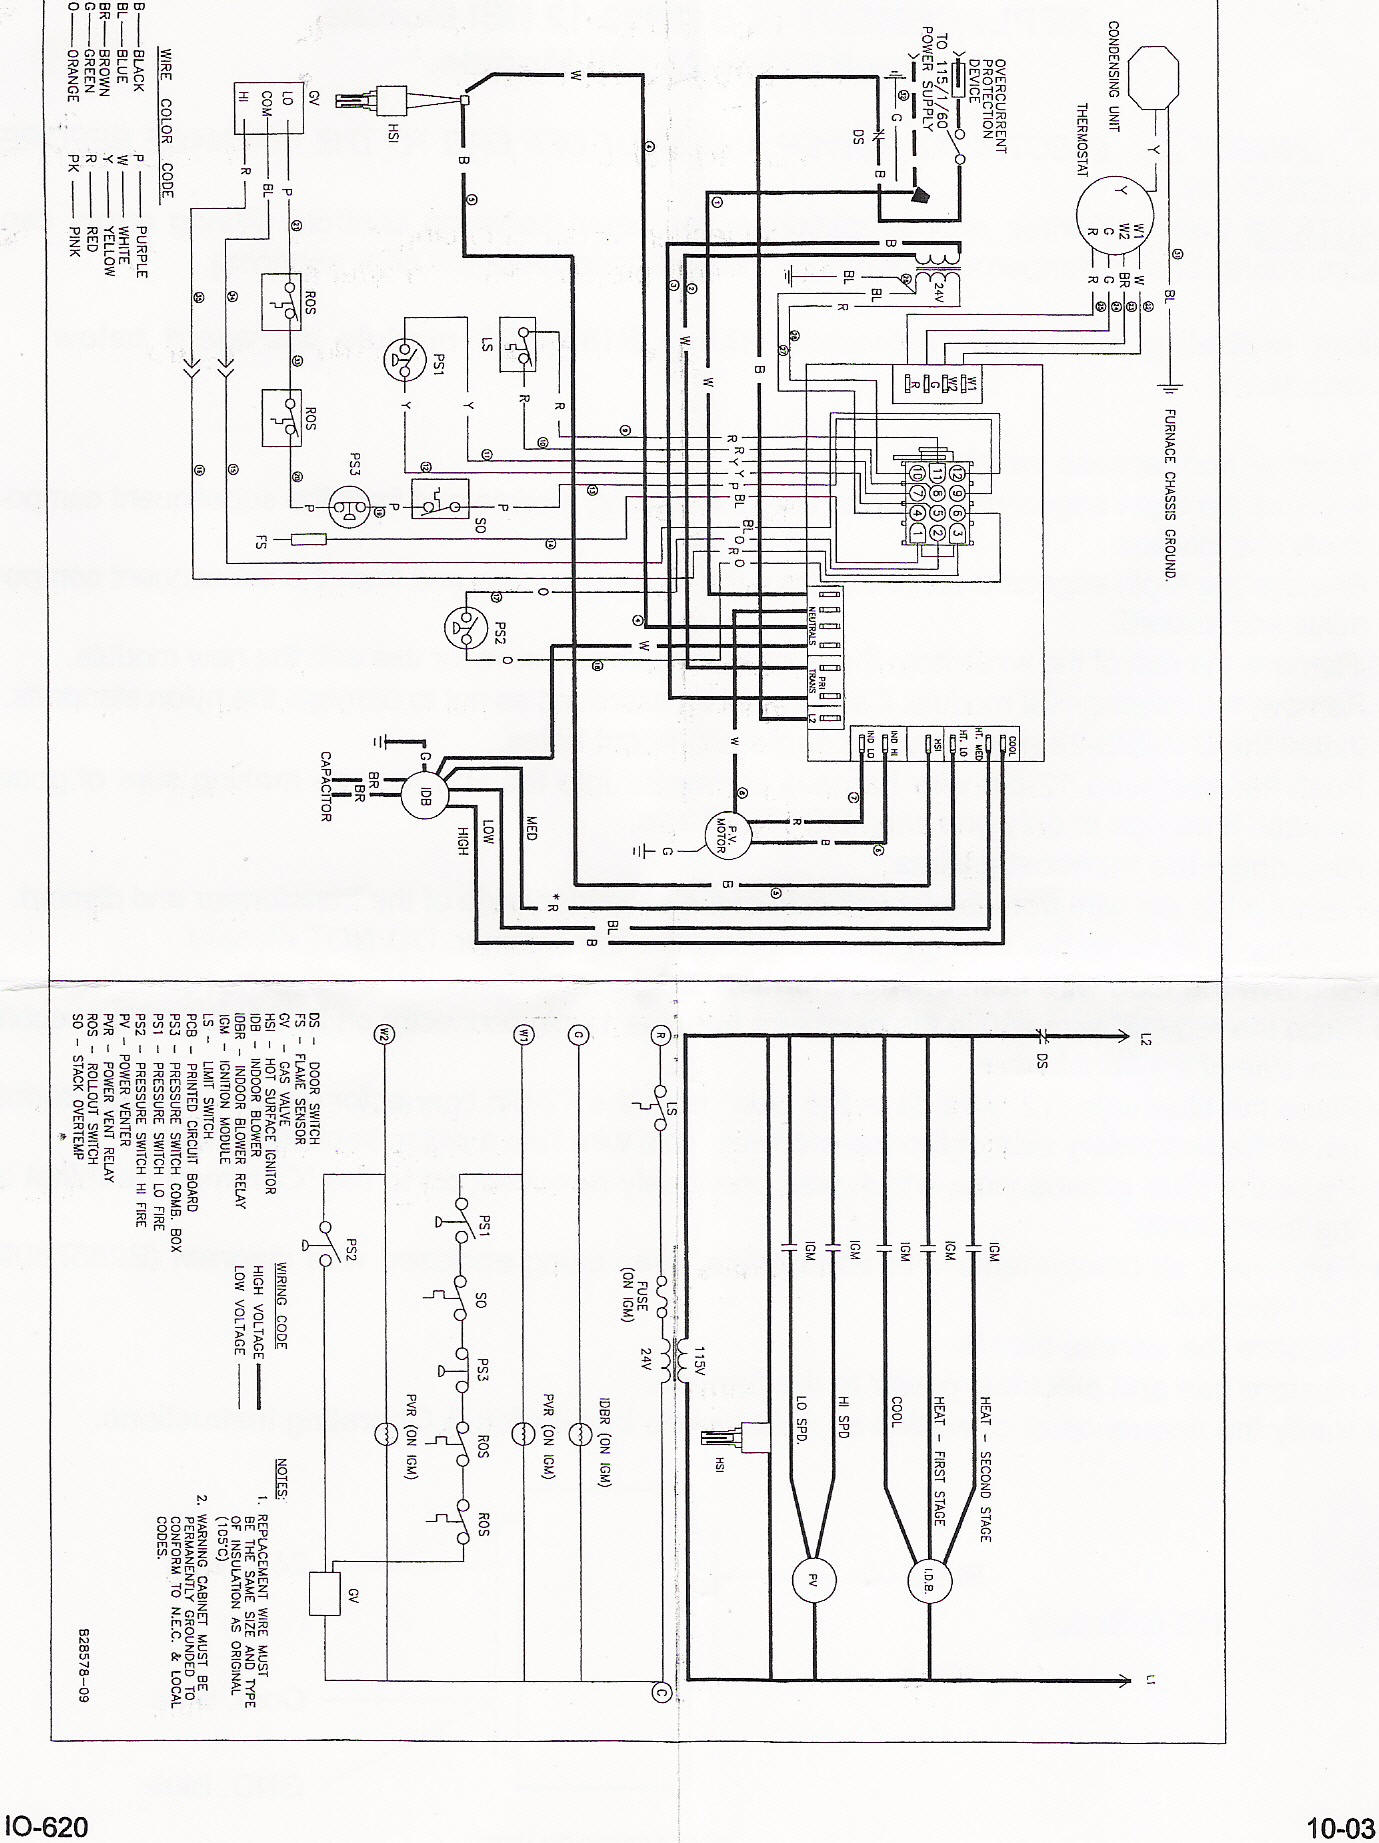 coleman air conditioning wiring diagram with Goodman Board B18099 23 on Trailer Wiring Diagrams together with Coleman 13500 Btu Roof Air Conditioner Top Unit P 1331 additionally Gas Furnace Schematic Wiring Diagram likewise How To Read Electrical Wiring Diagrams furthermore Goodman Board B18099 23.